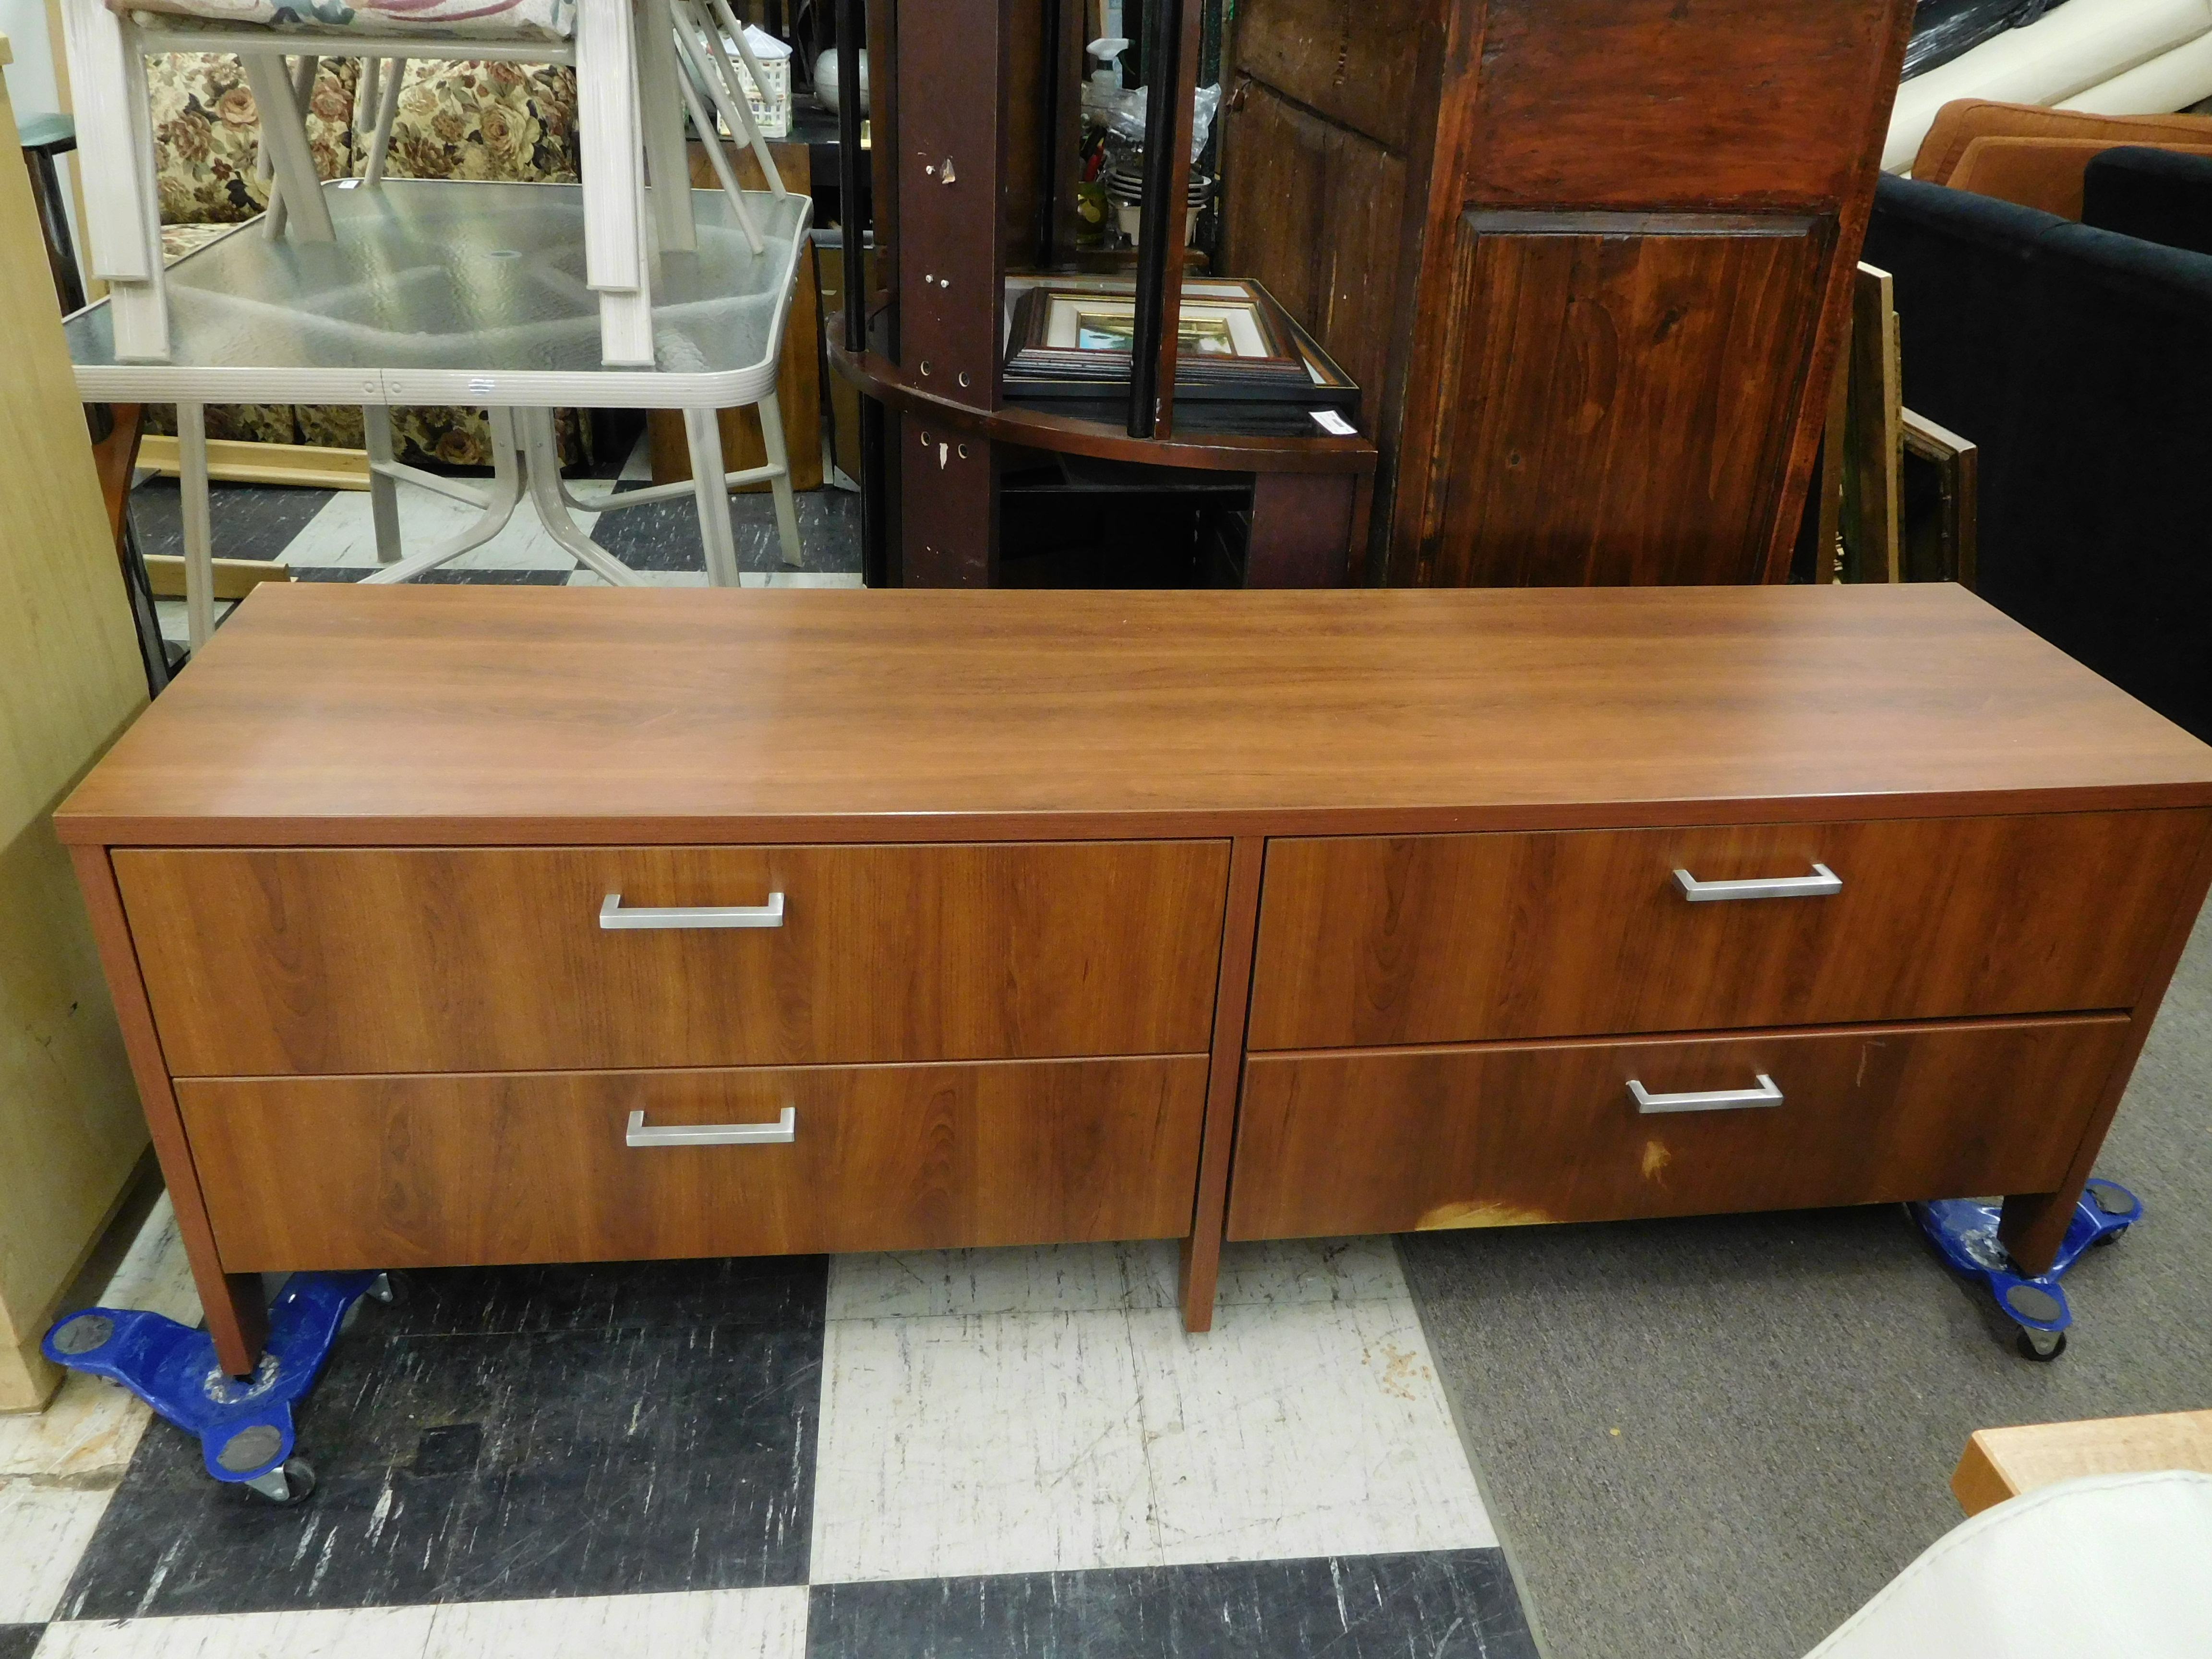 Modern Bernhardt Credenza with 4 Drawers and Silver Pulls